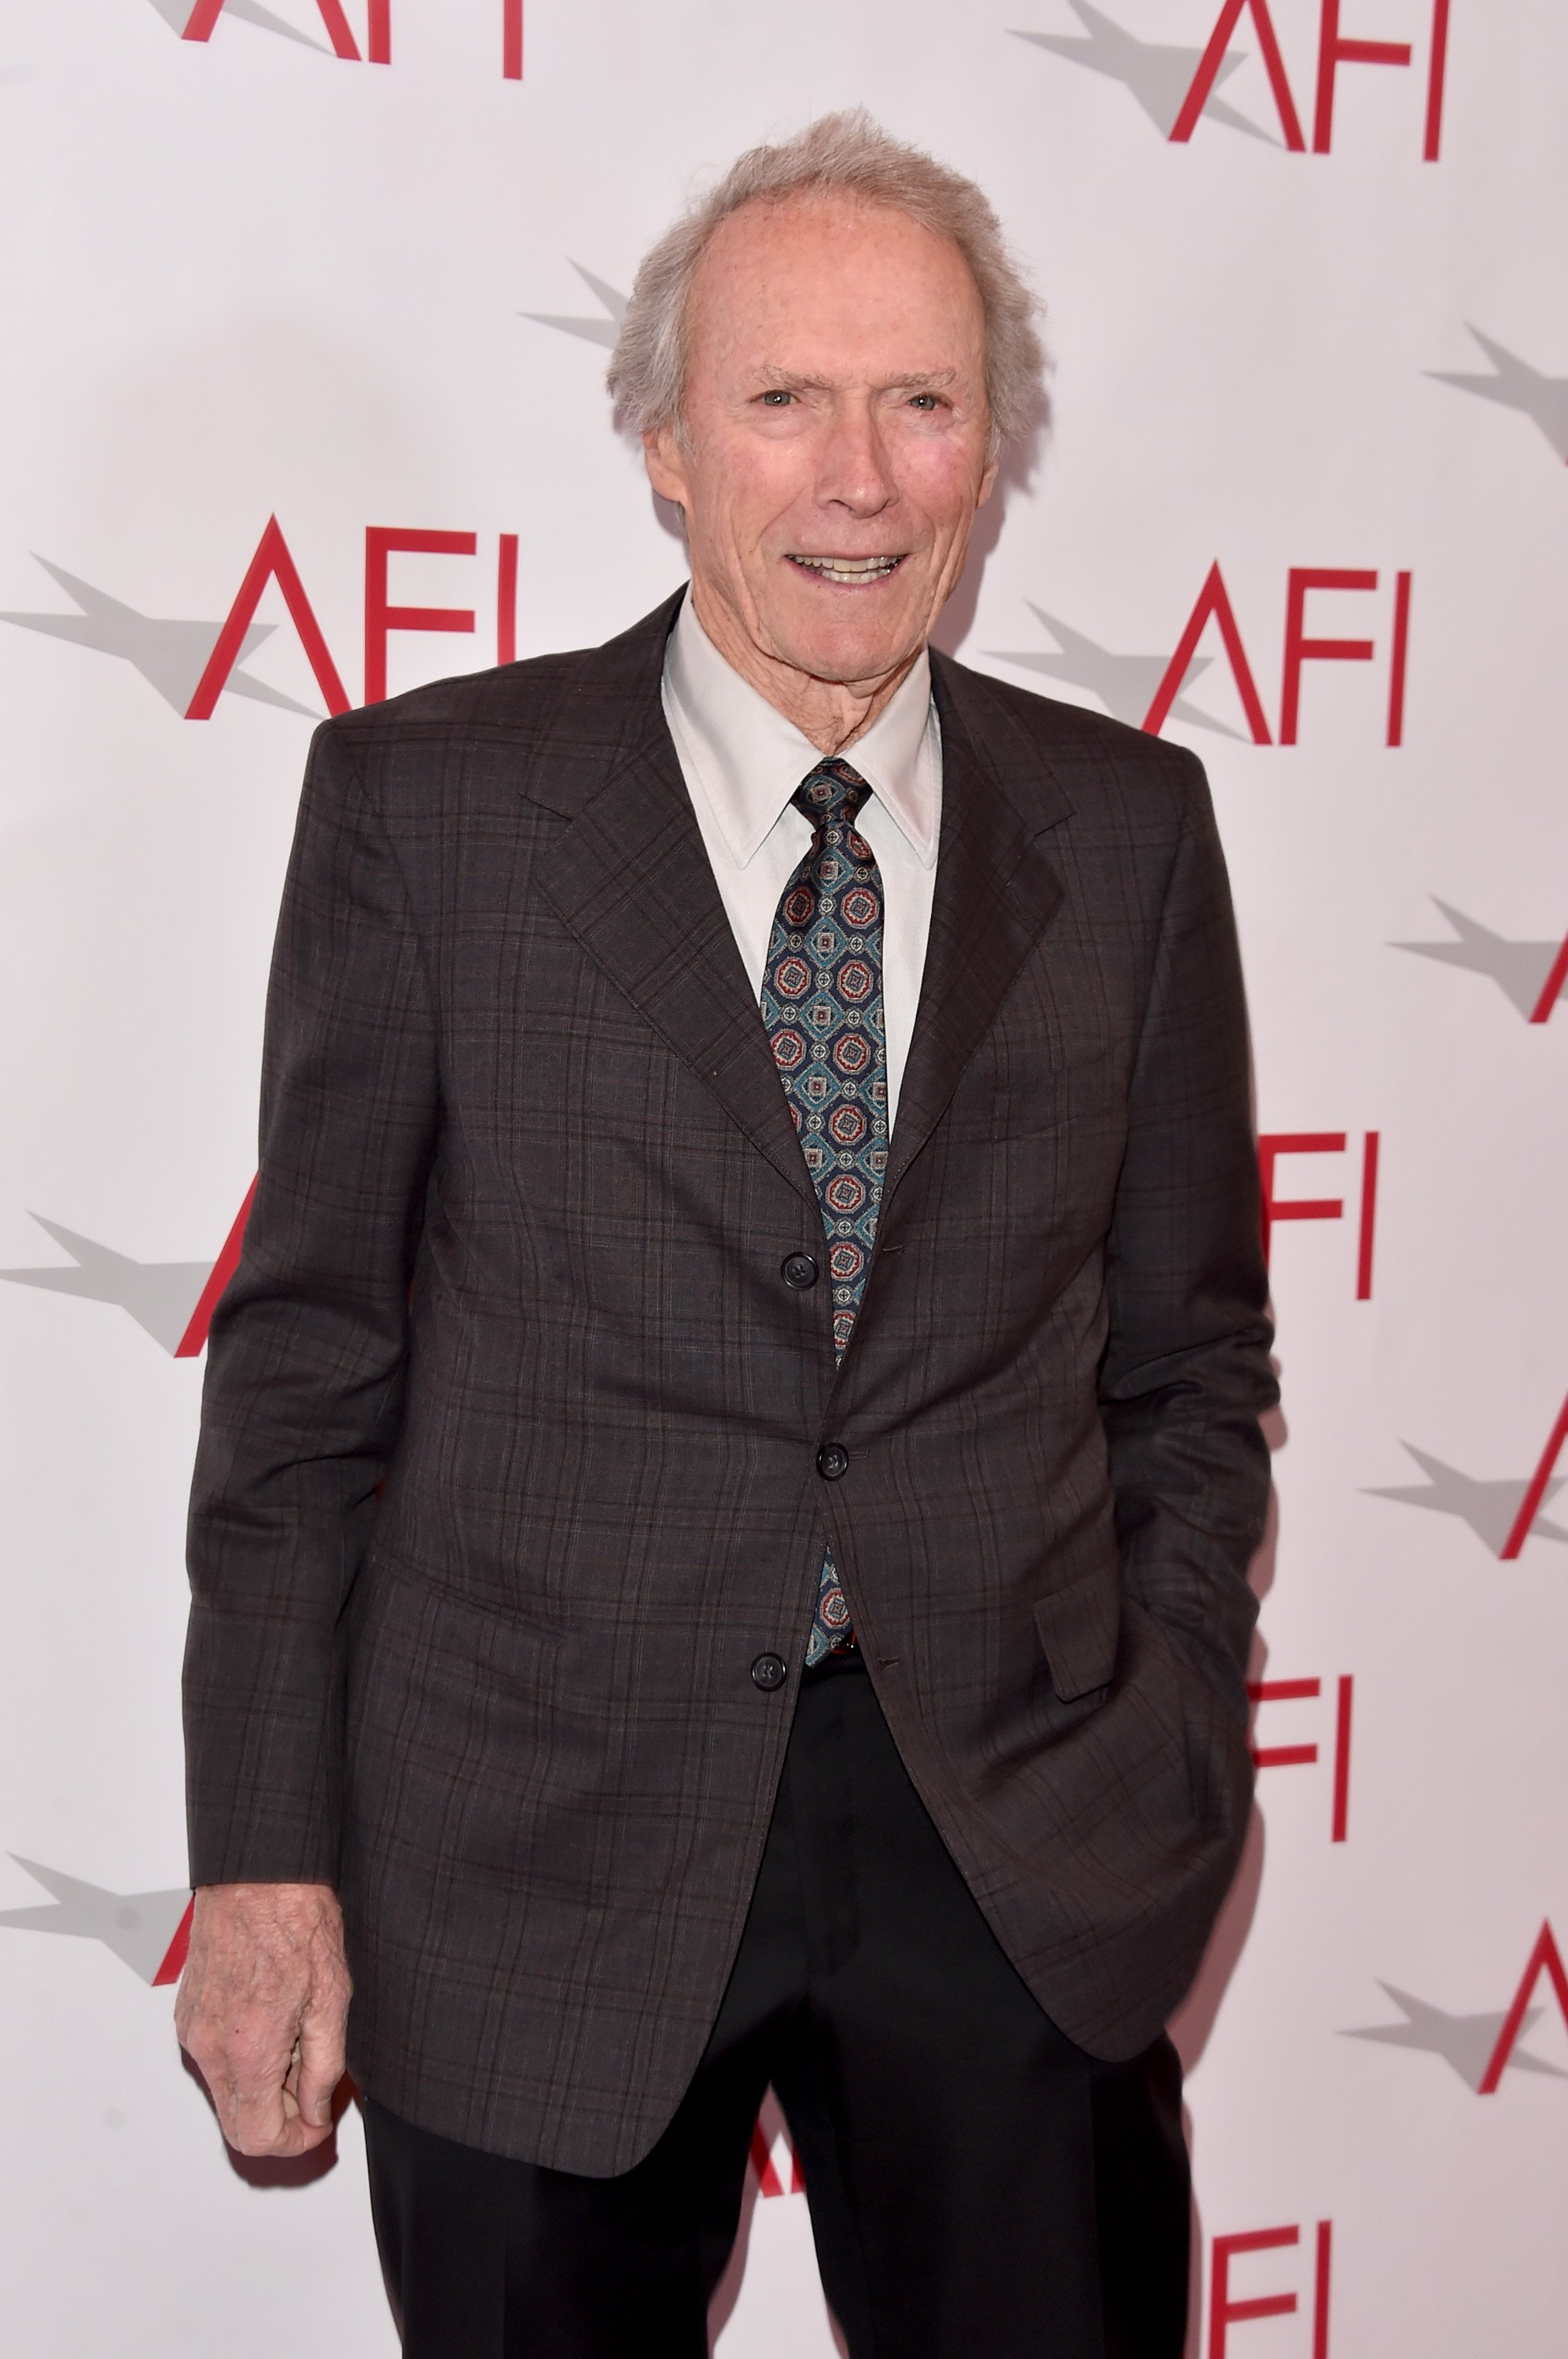 Clint Eastwood attends the AFI Awards in Los Angeles, California on January 6, 2017 | Photo: Getty Images